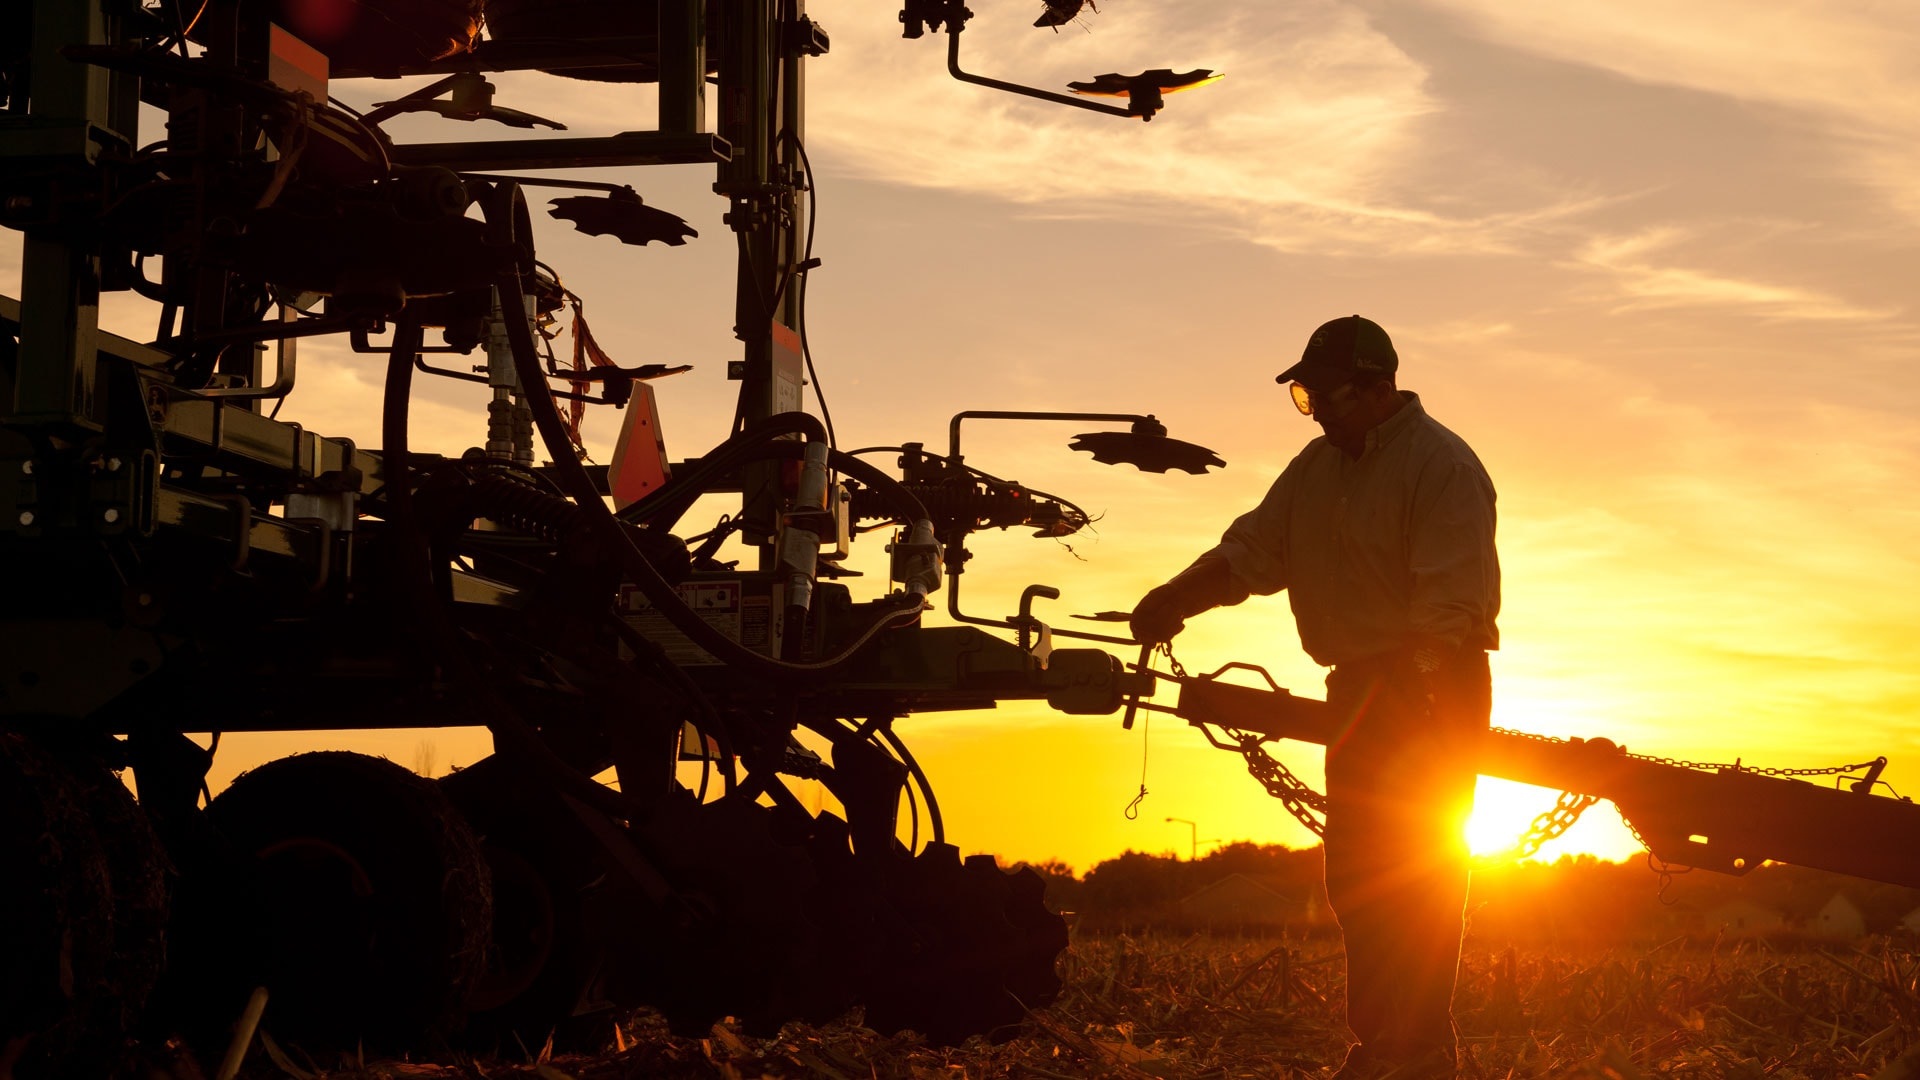 sunrise/sunset of sprayer equipment out in the field